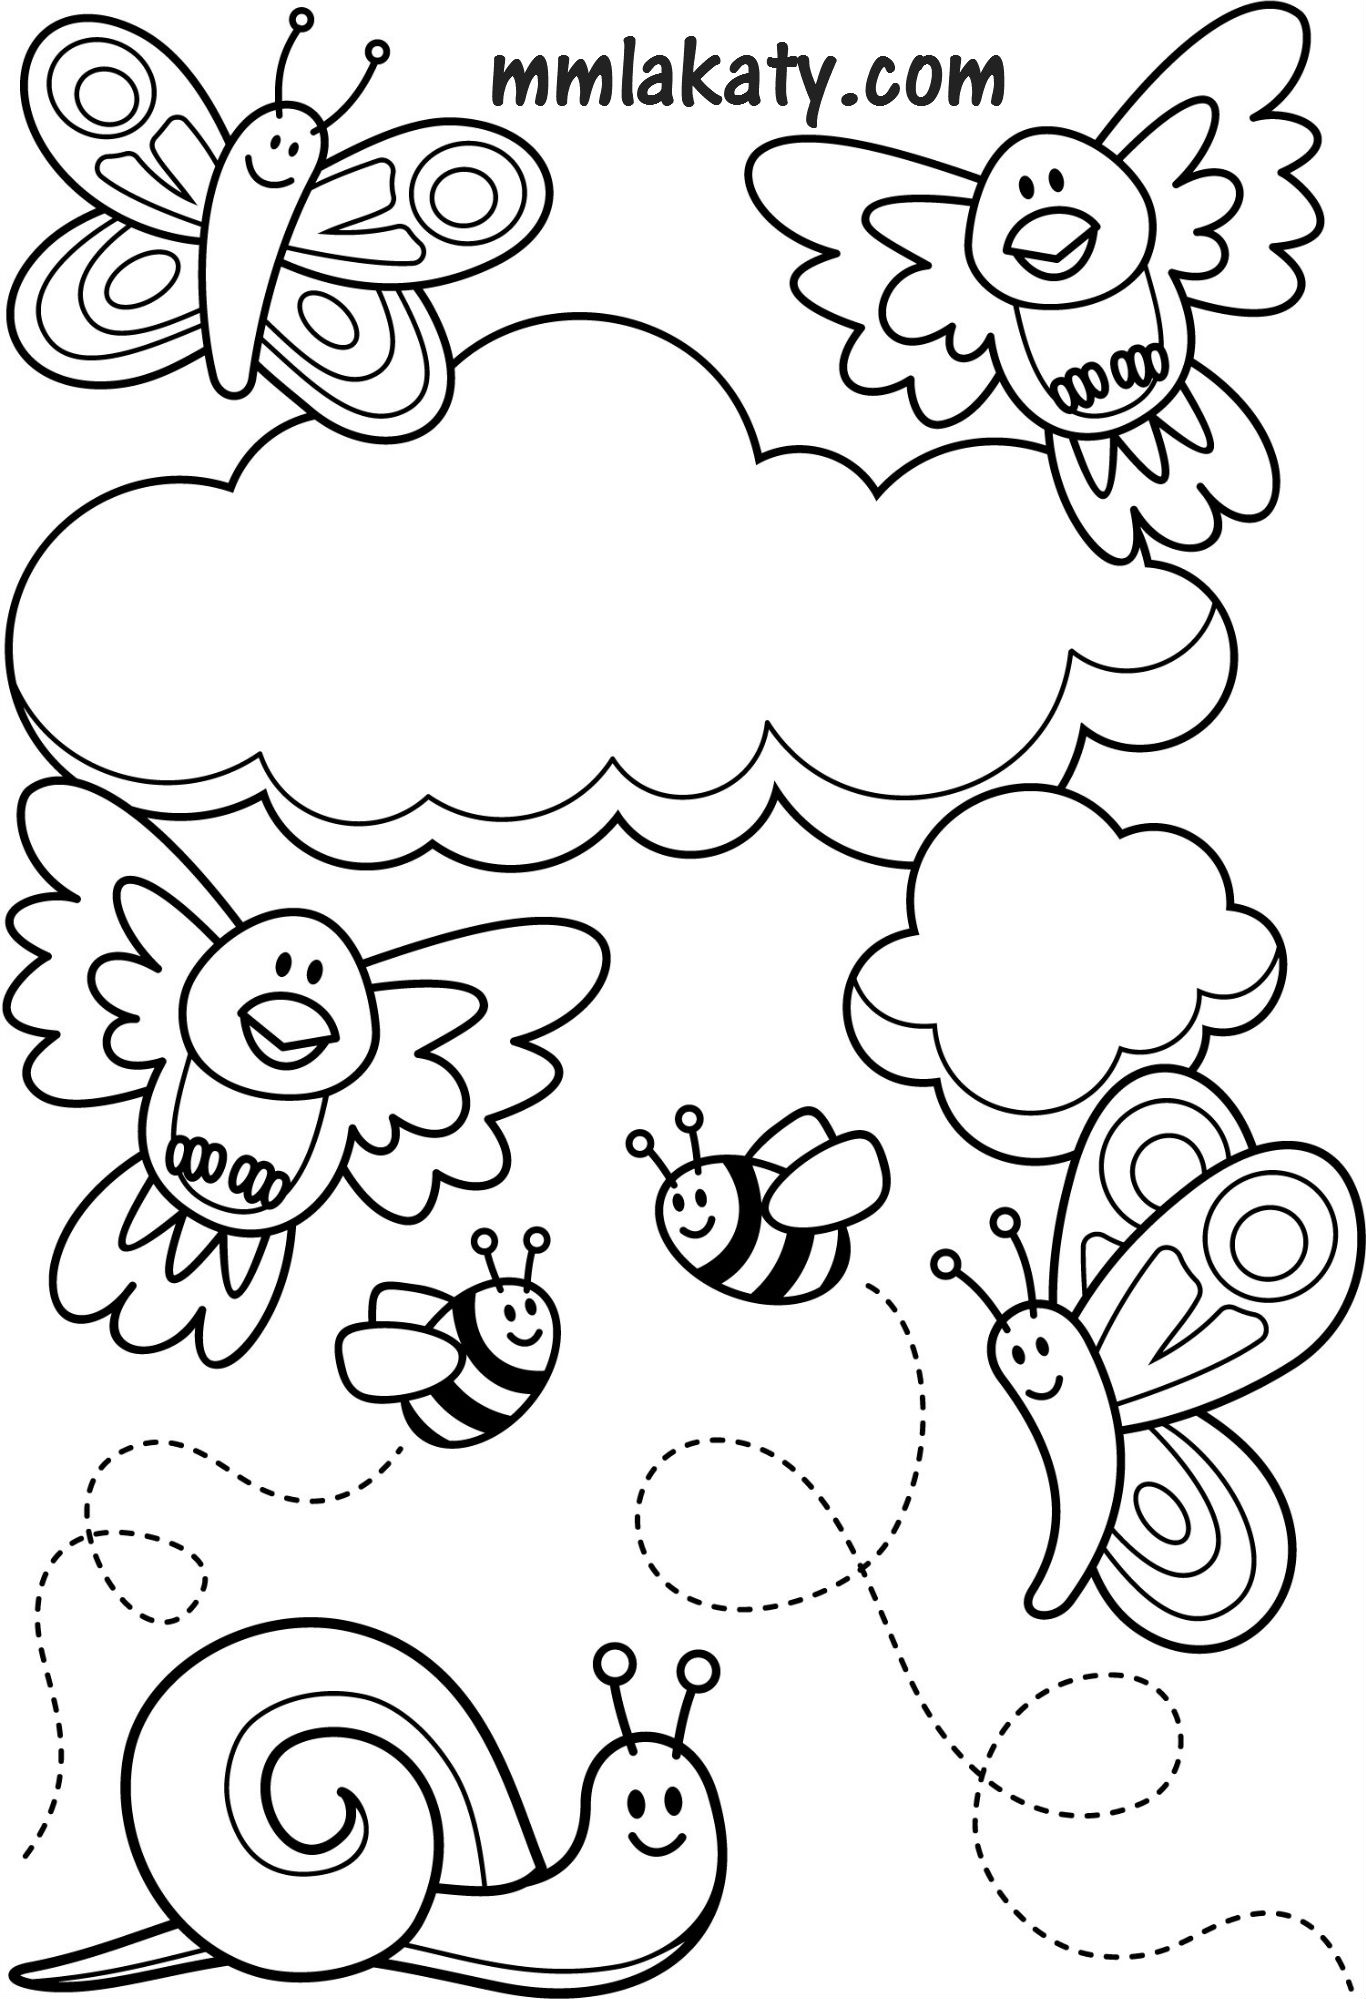 Free Tree Frog Coloring Pages